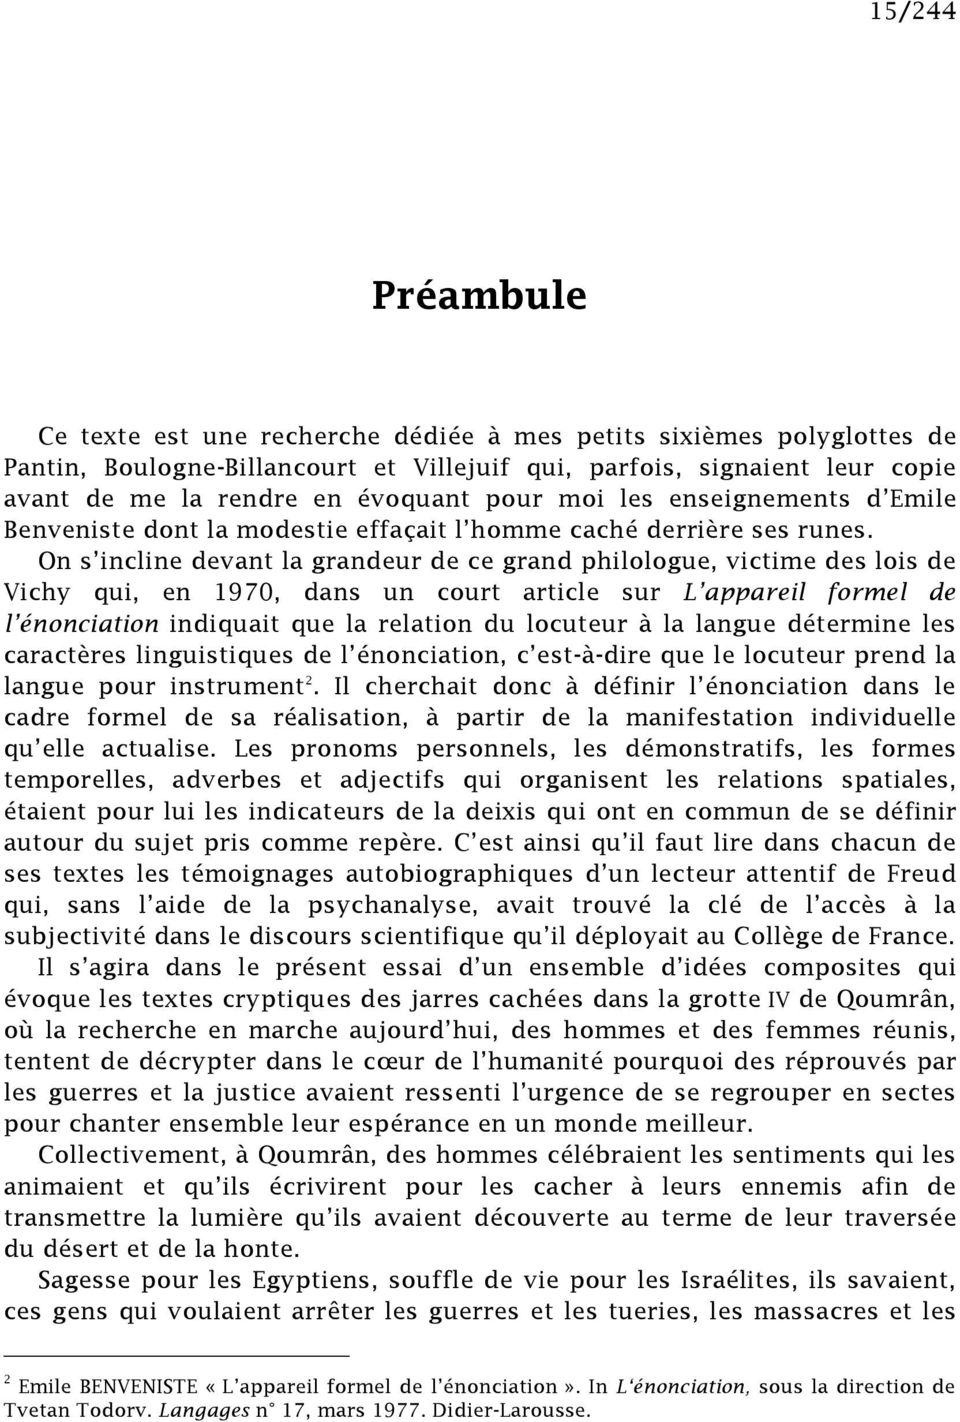 On s incline devant la grandeur de ce grand philologue, victime des lois de Vichy qui, en 1970, dans un court article sur L appareil formel de l énonciation indiquait que la relation du locuteur à la